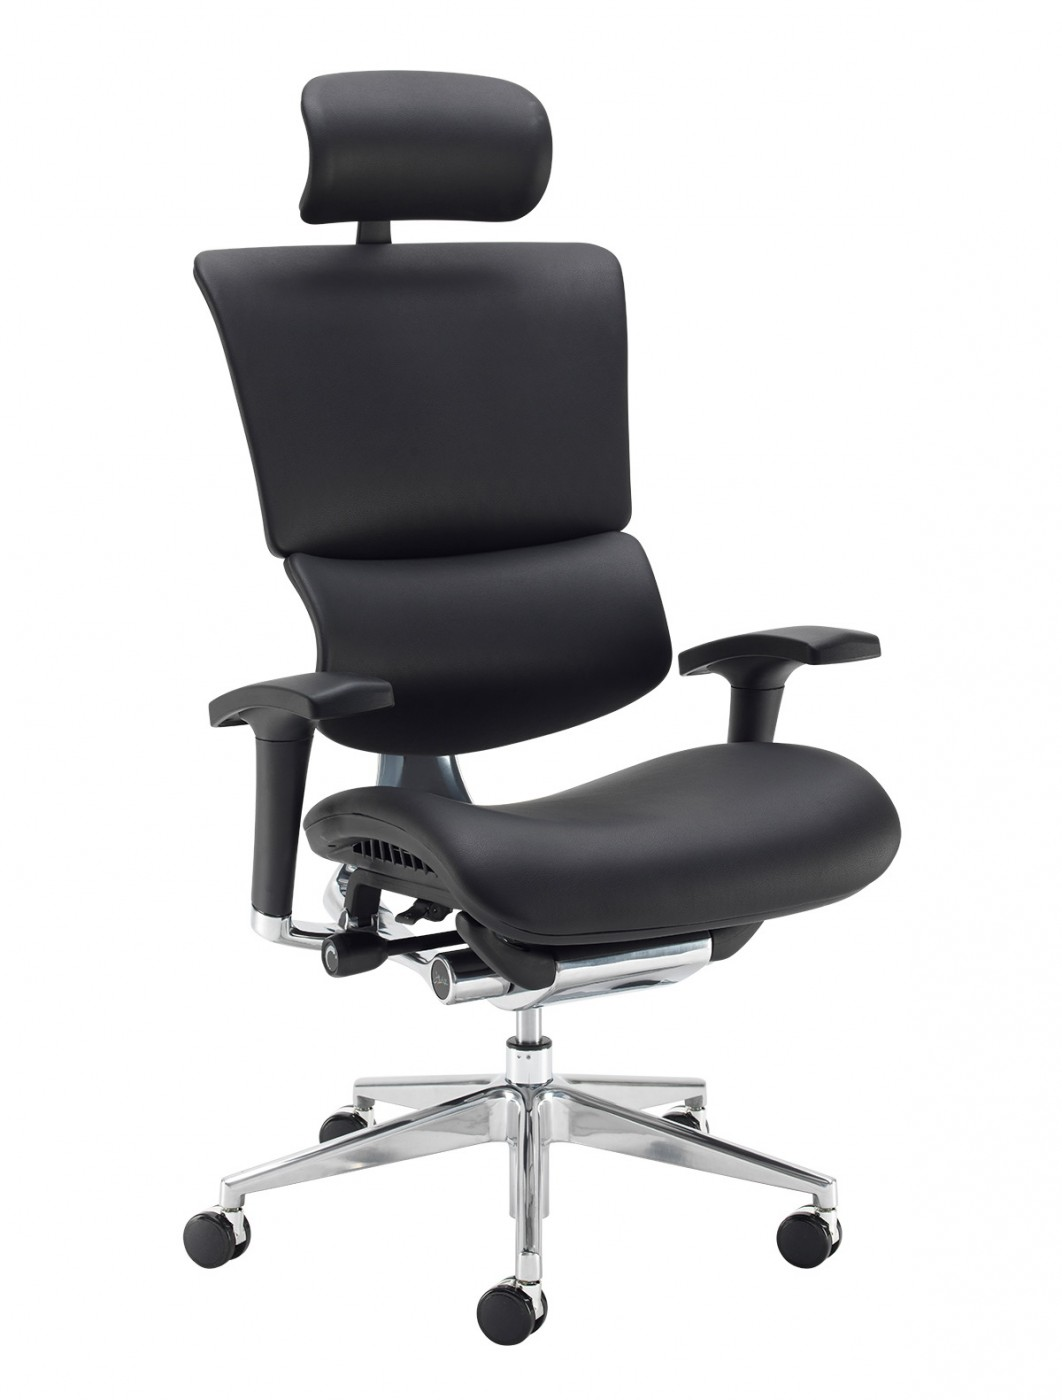 Office Chair Black Bonded Leather Dynamo Ergo with Headrest DYNX401E1-C by Dams